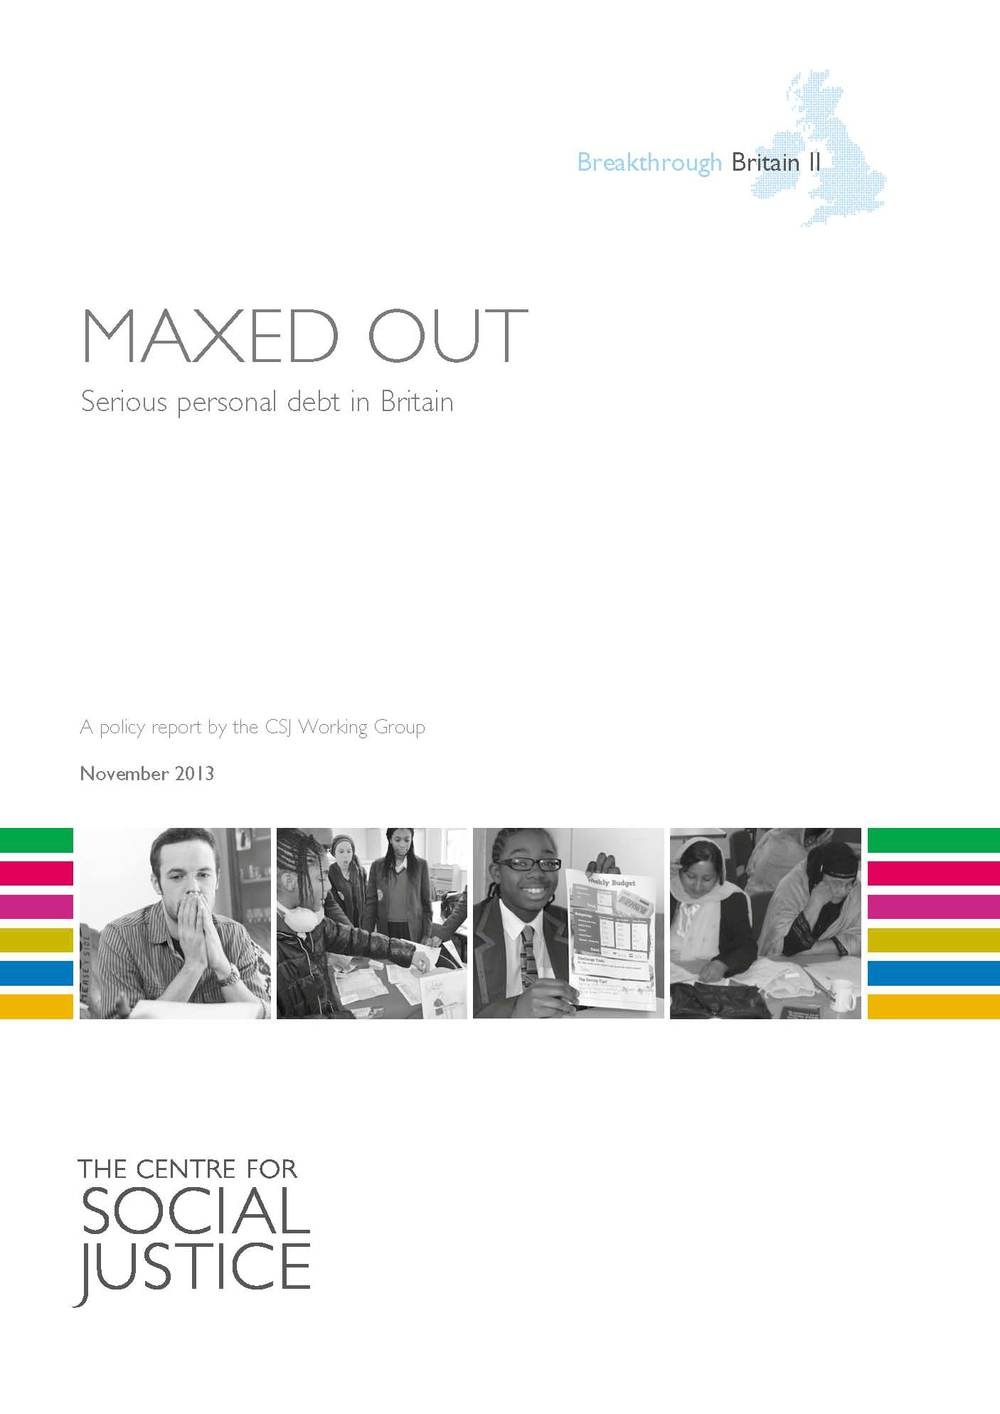 Maxed out: Serious personal debt in Britain The Centre for Social Justice Download PDF (1.8Mb)